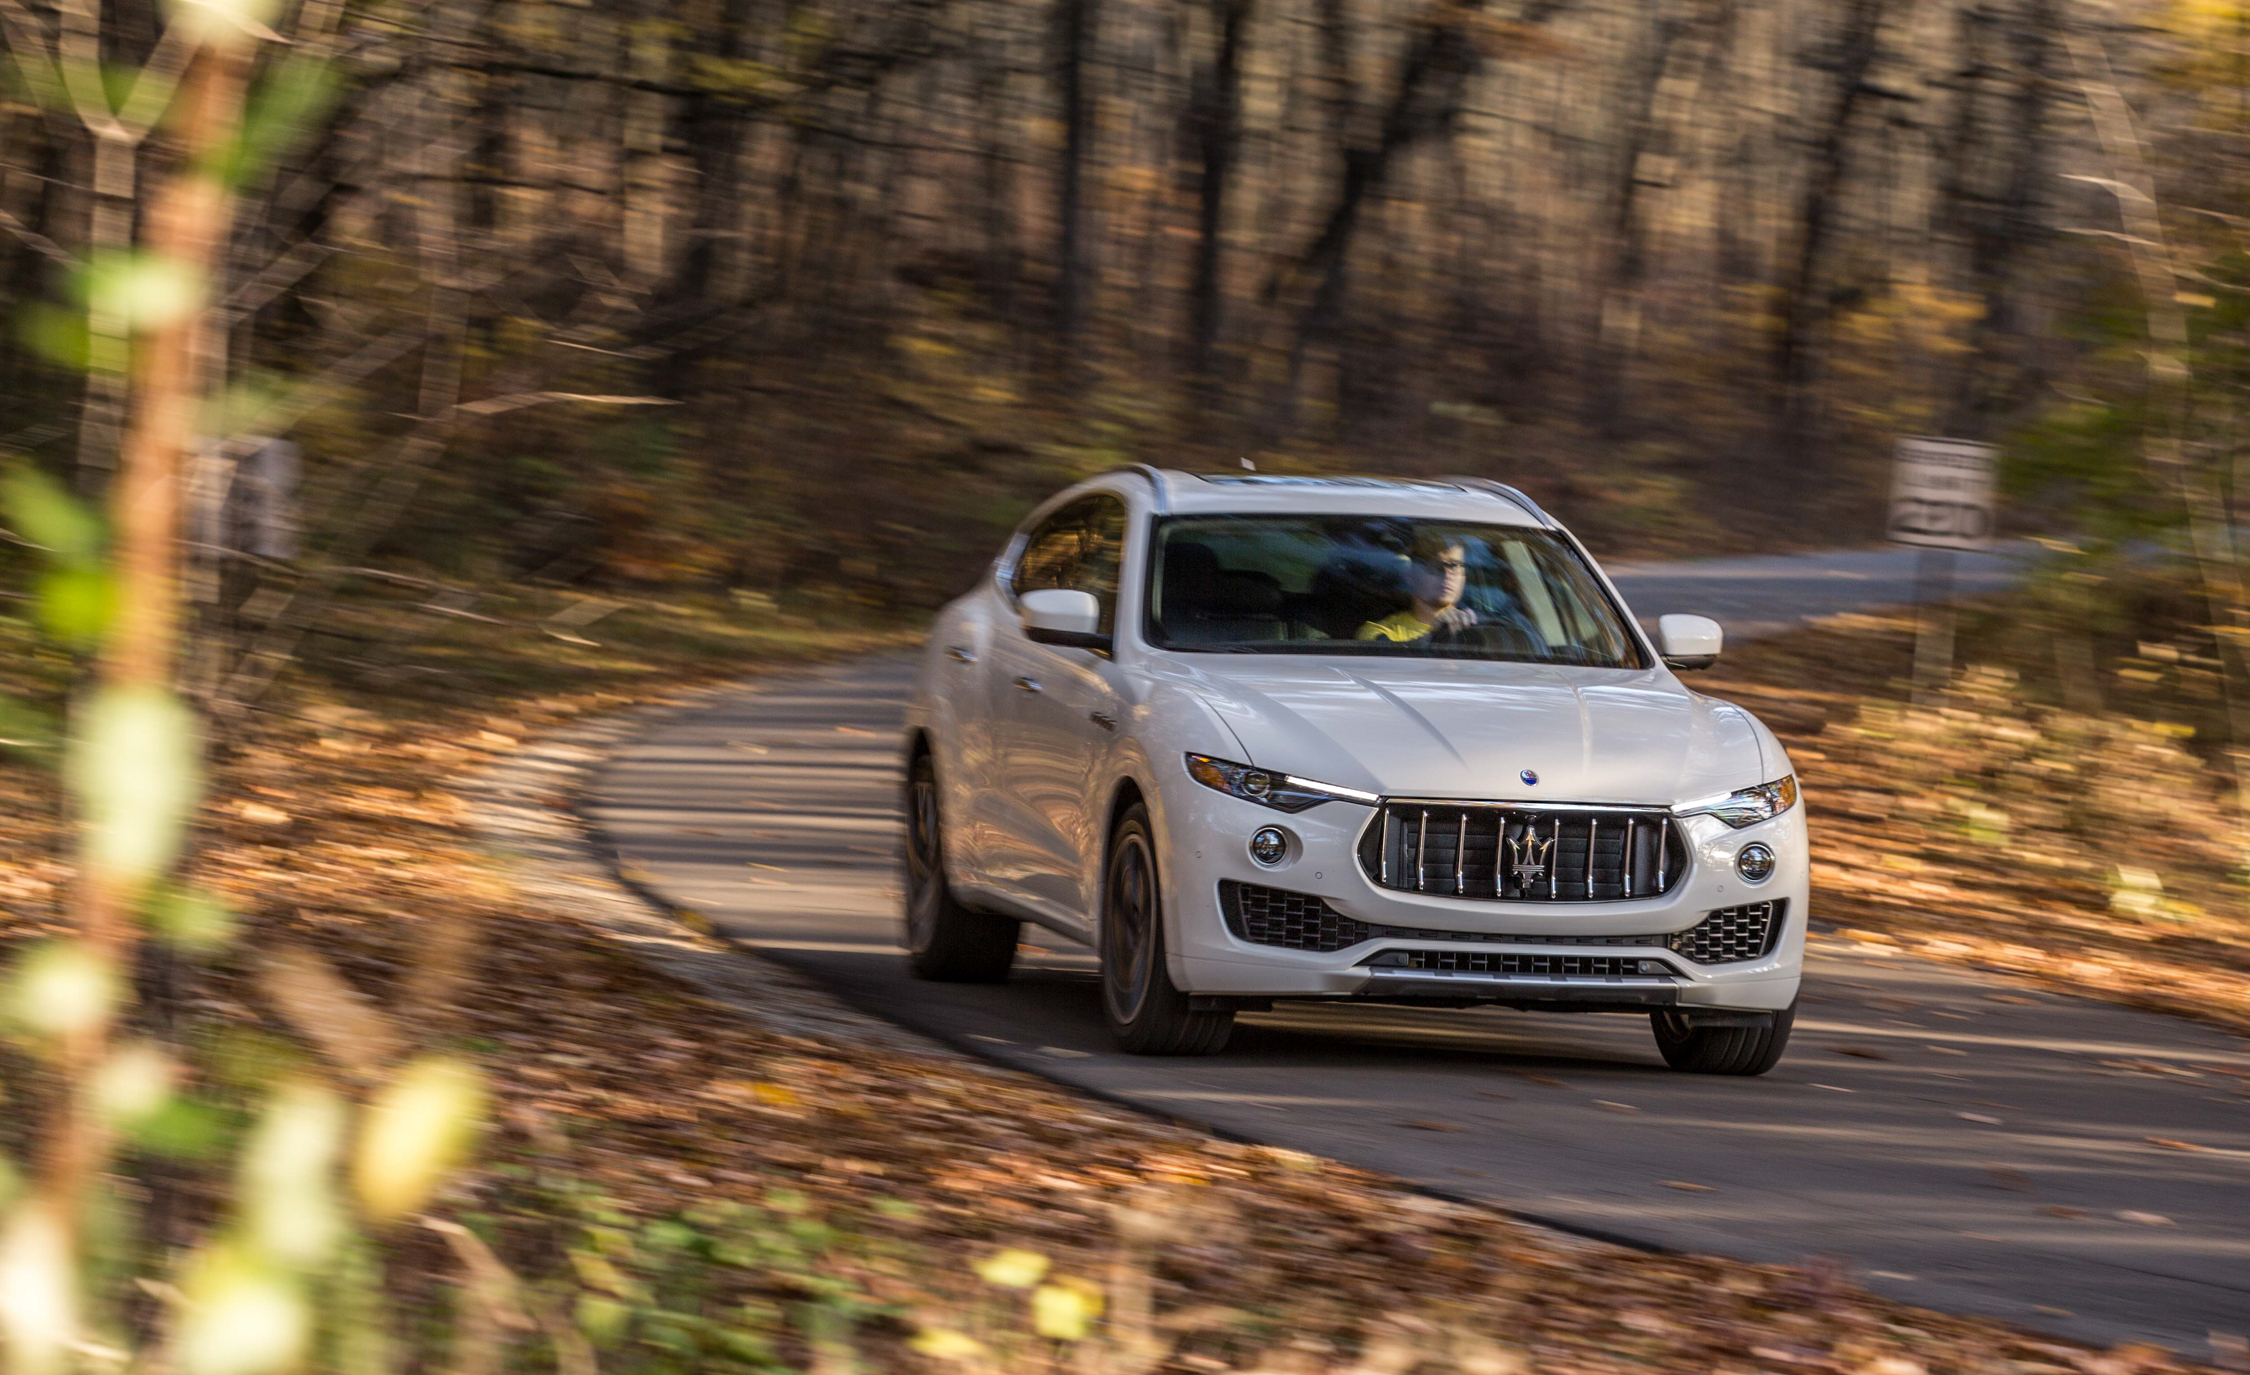 2017 Maserati Levante S Q4 Test Drive Front View (Photo 16 of 21)